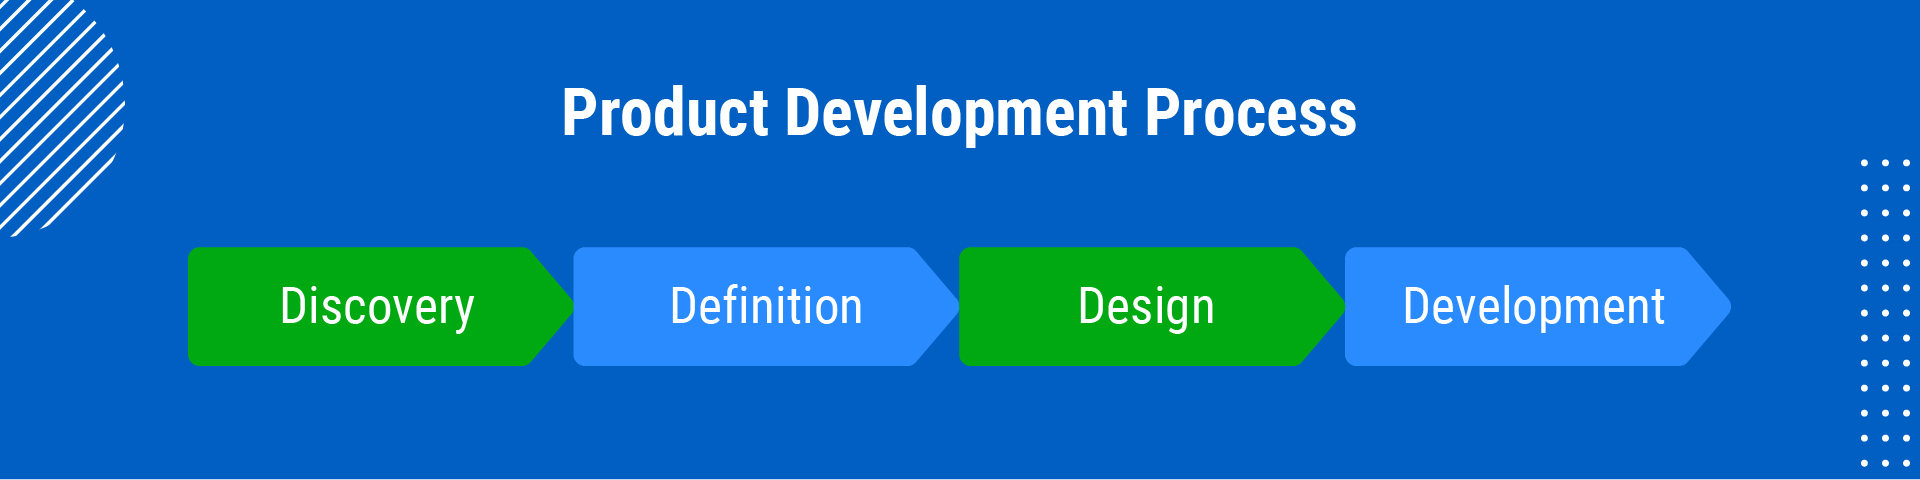 traditional product development model